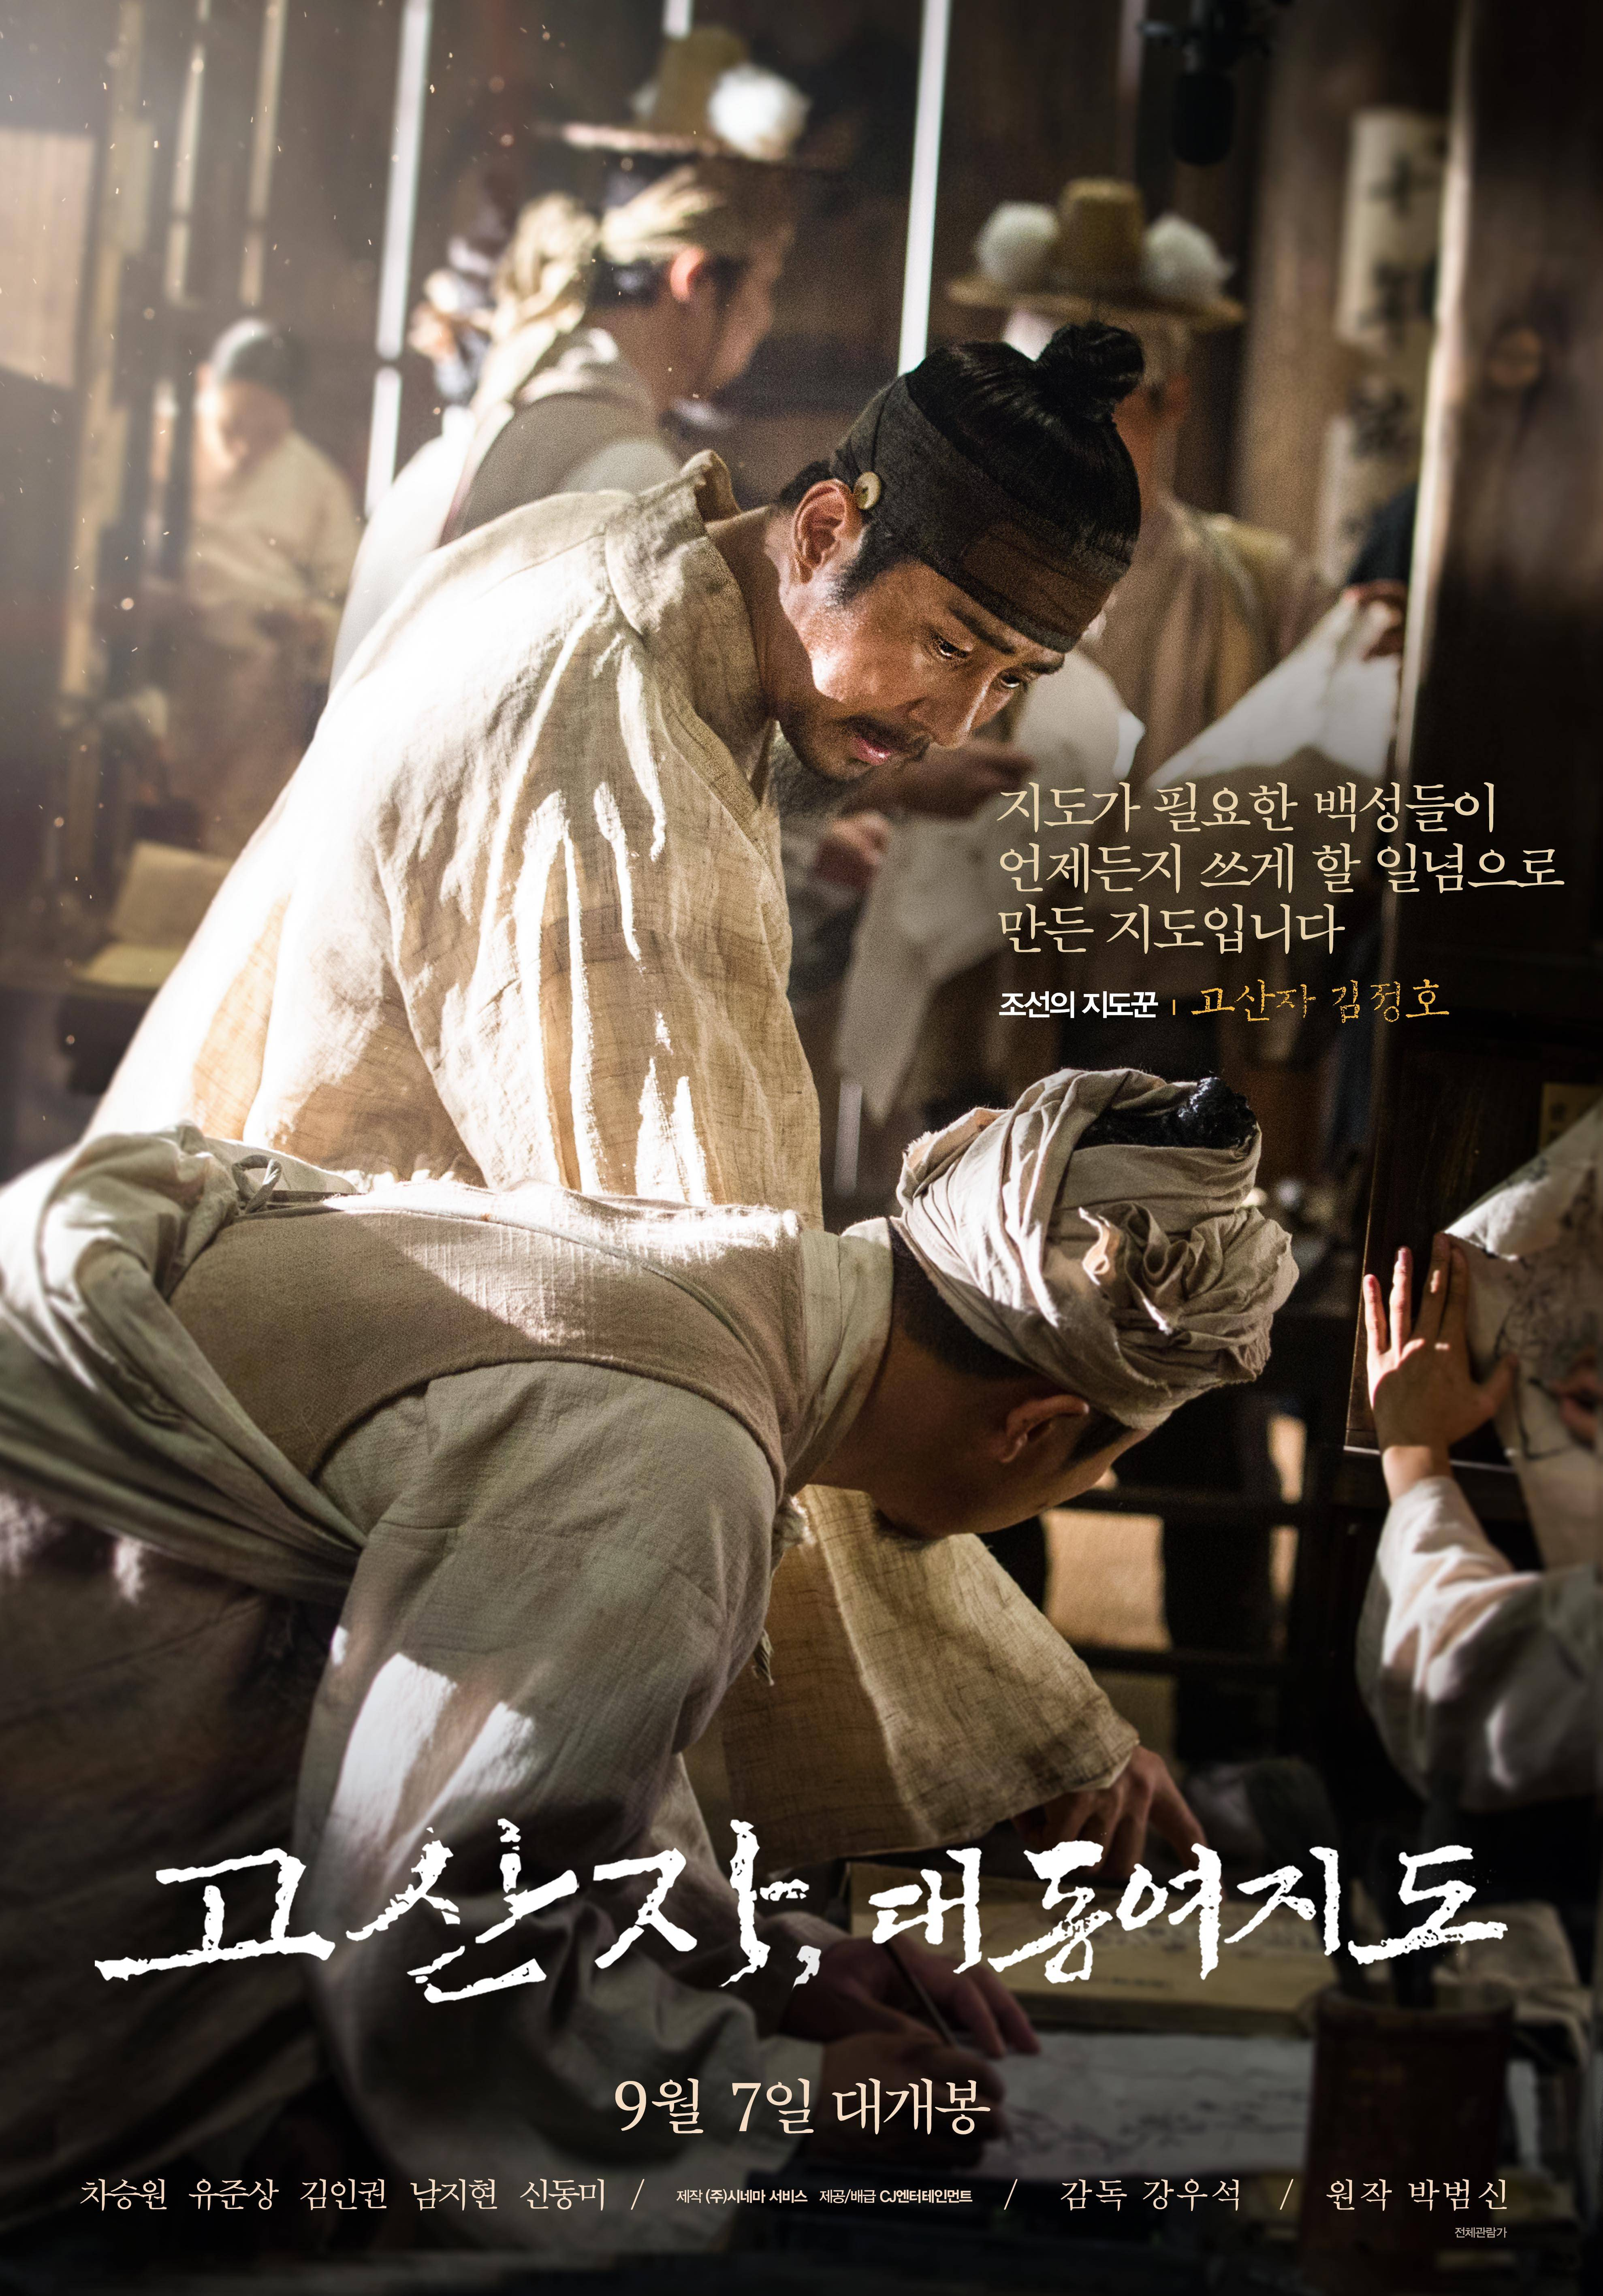 Added New Posters Stills And Art Video For The Upcoming Korean Movie